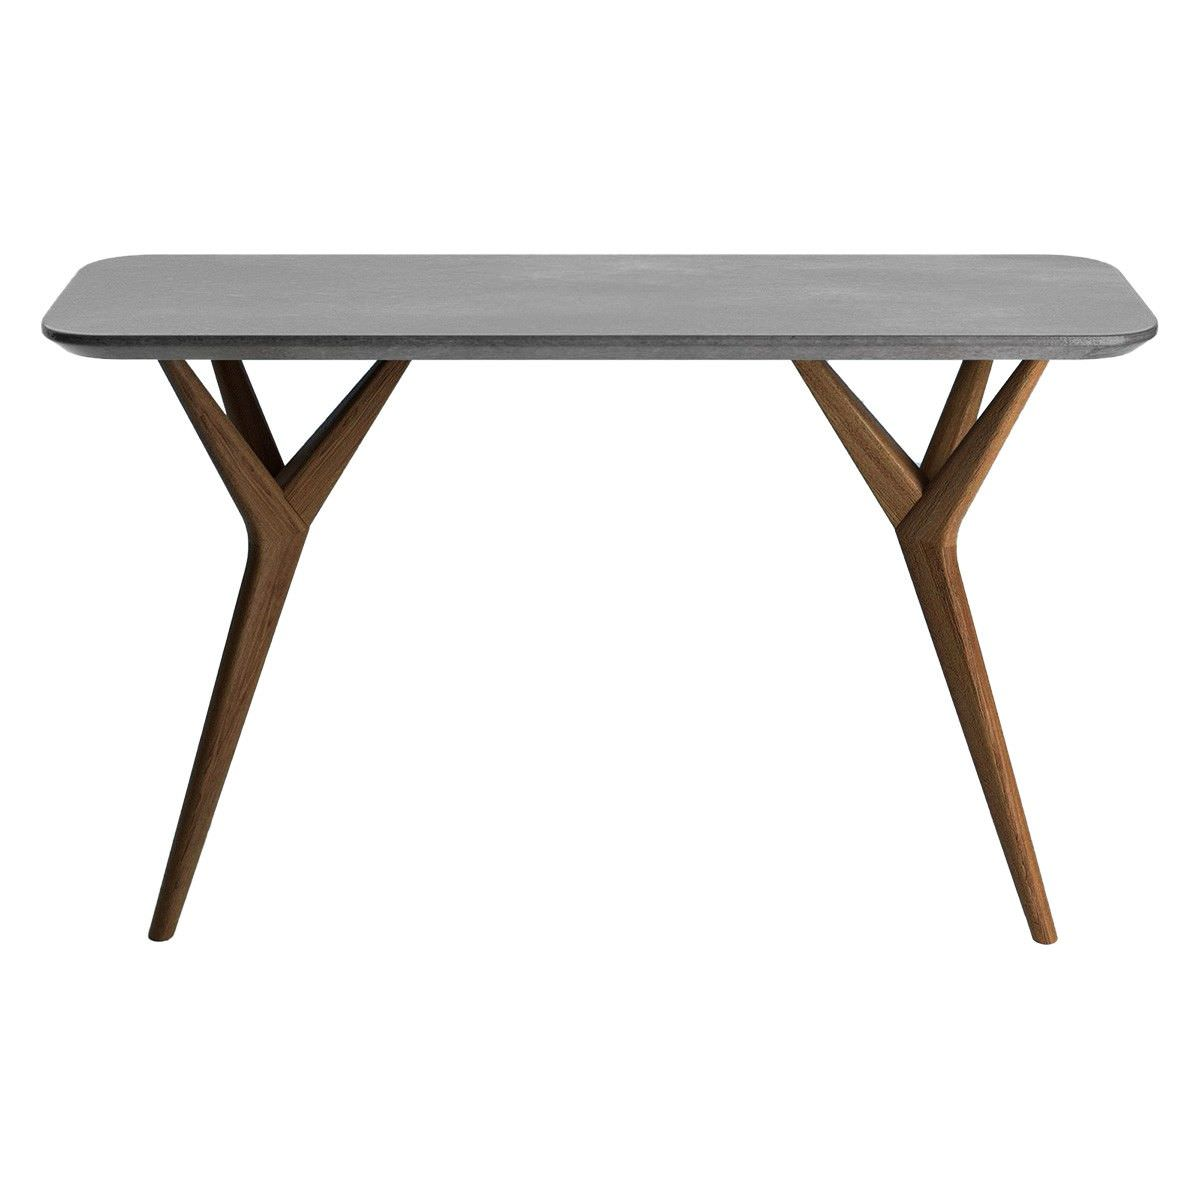 Twigs Concrete & Timber Console Table, 140cm